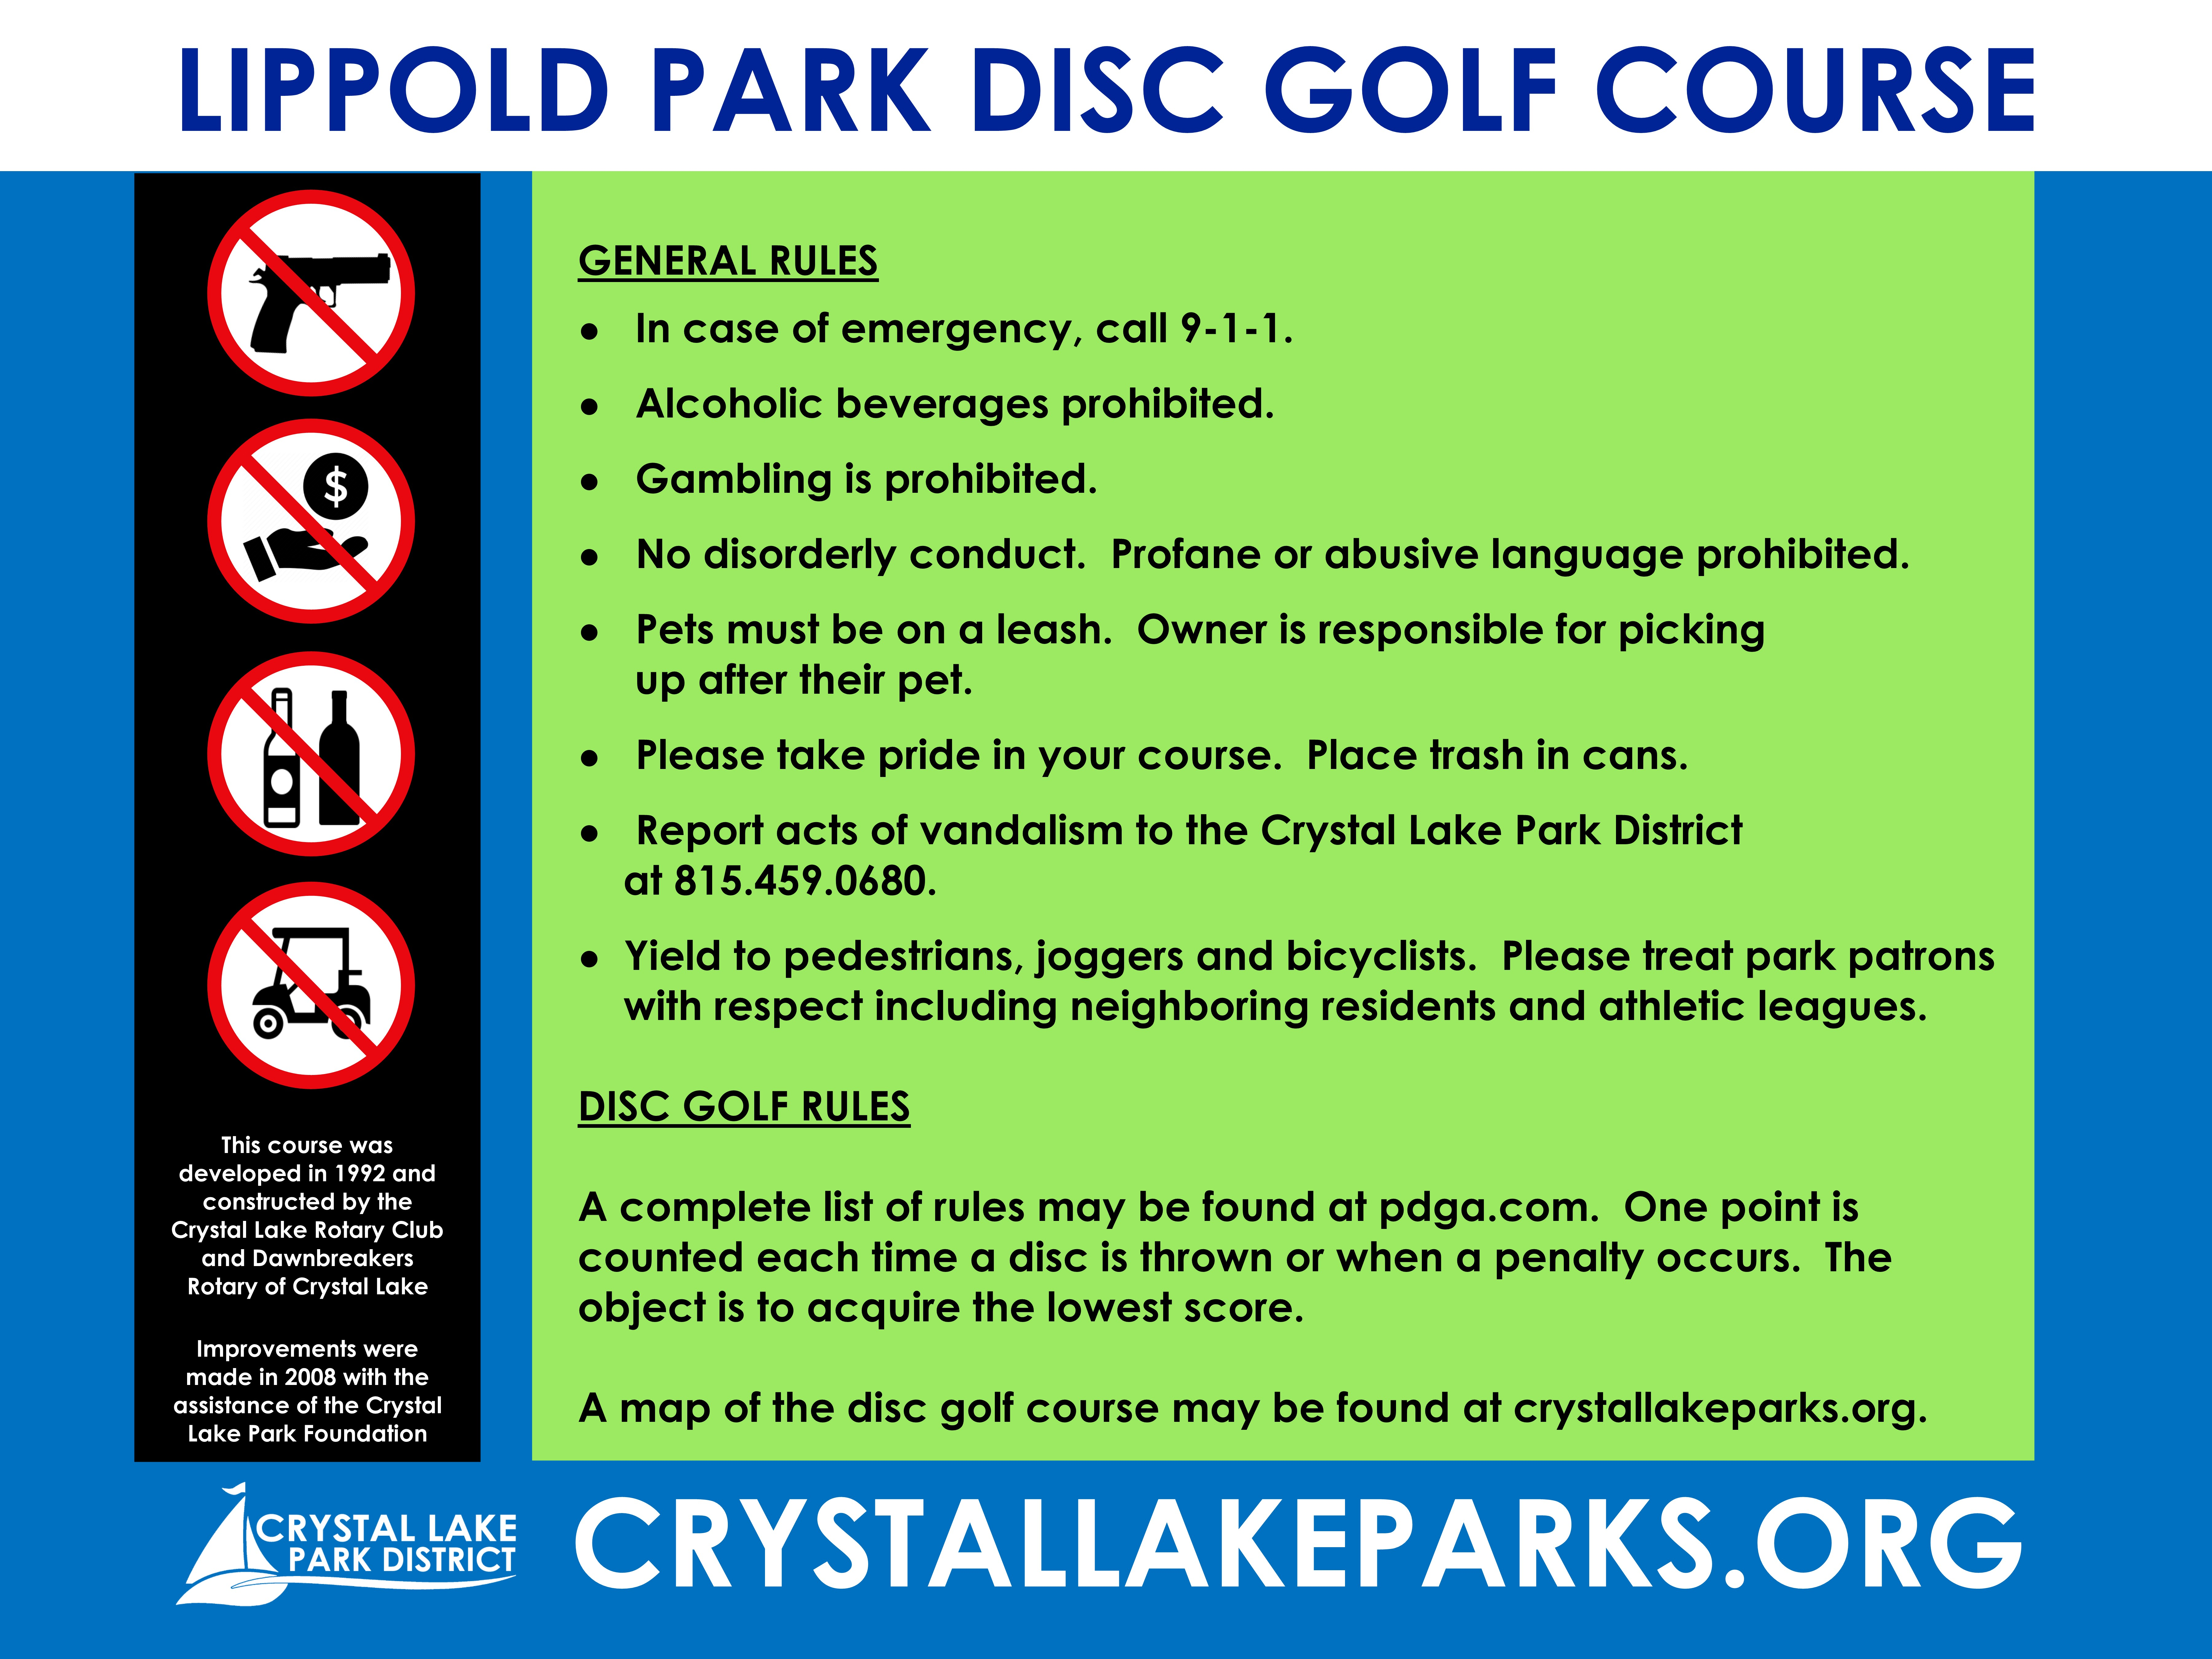 ----24 x 18 DISC GOLF RULES SIGN 8-1-19.jpg